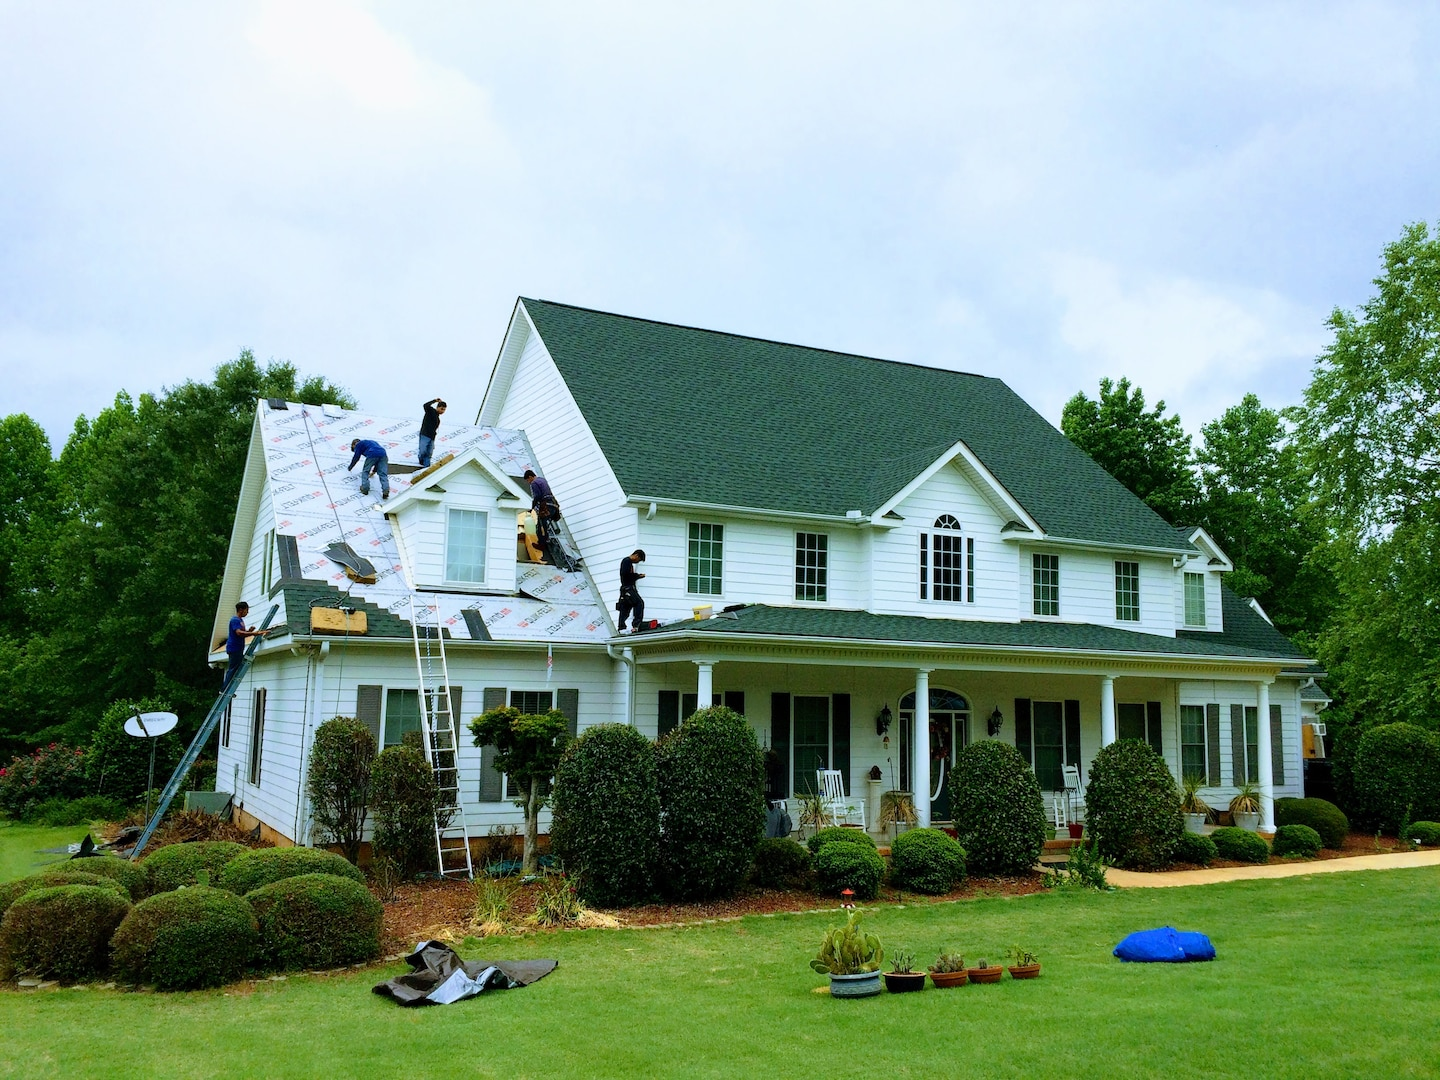 Recovery Roofing and Construction